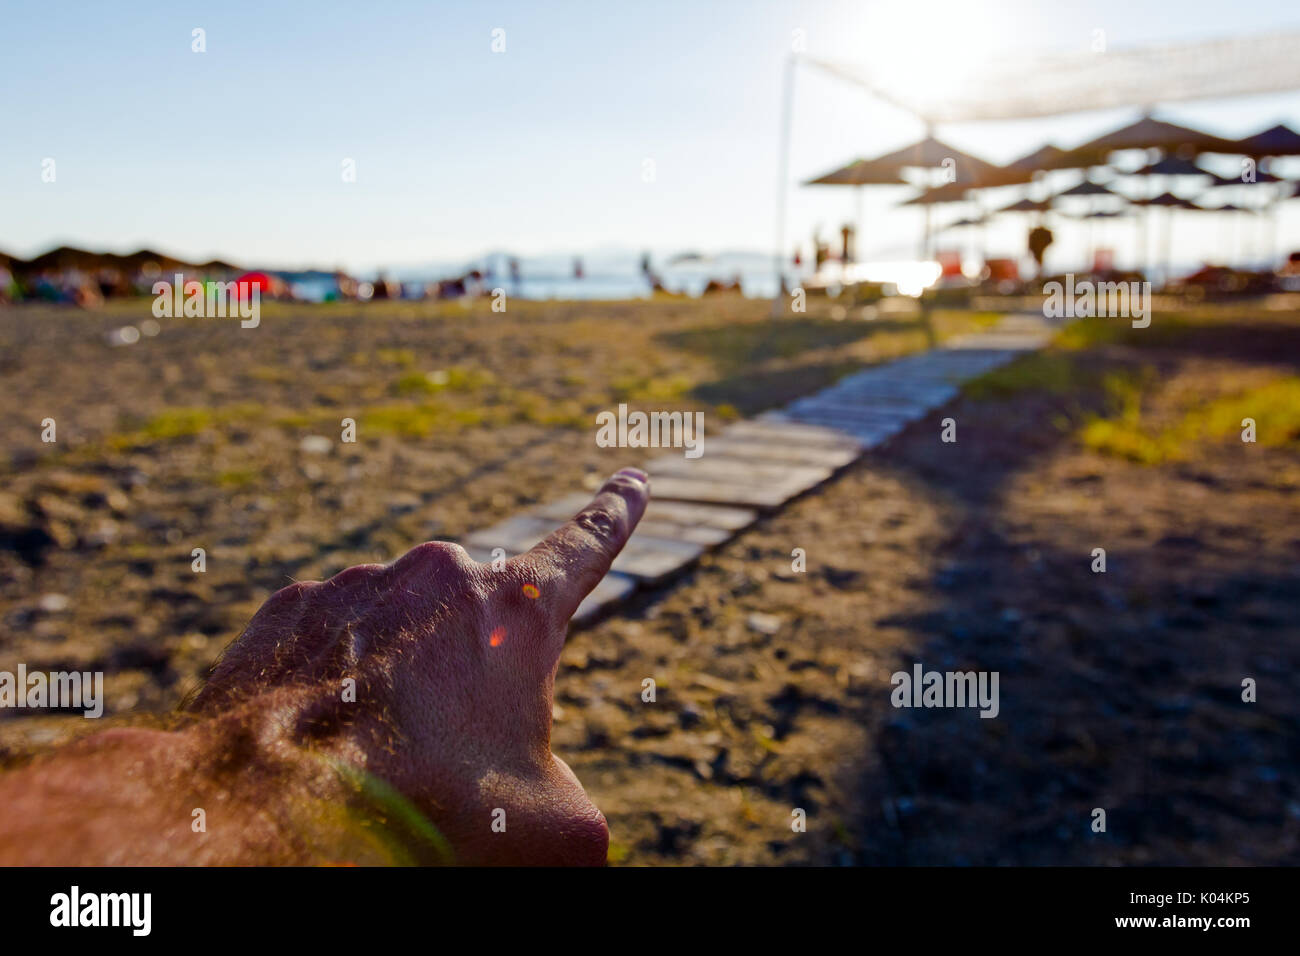 Hand is pointing with finger on wooden path through the sandy beach. - Stock Image